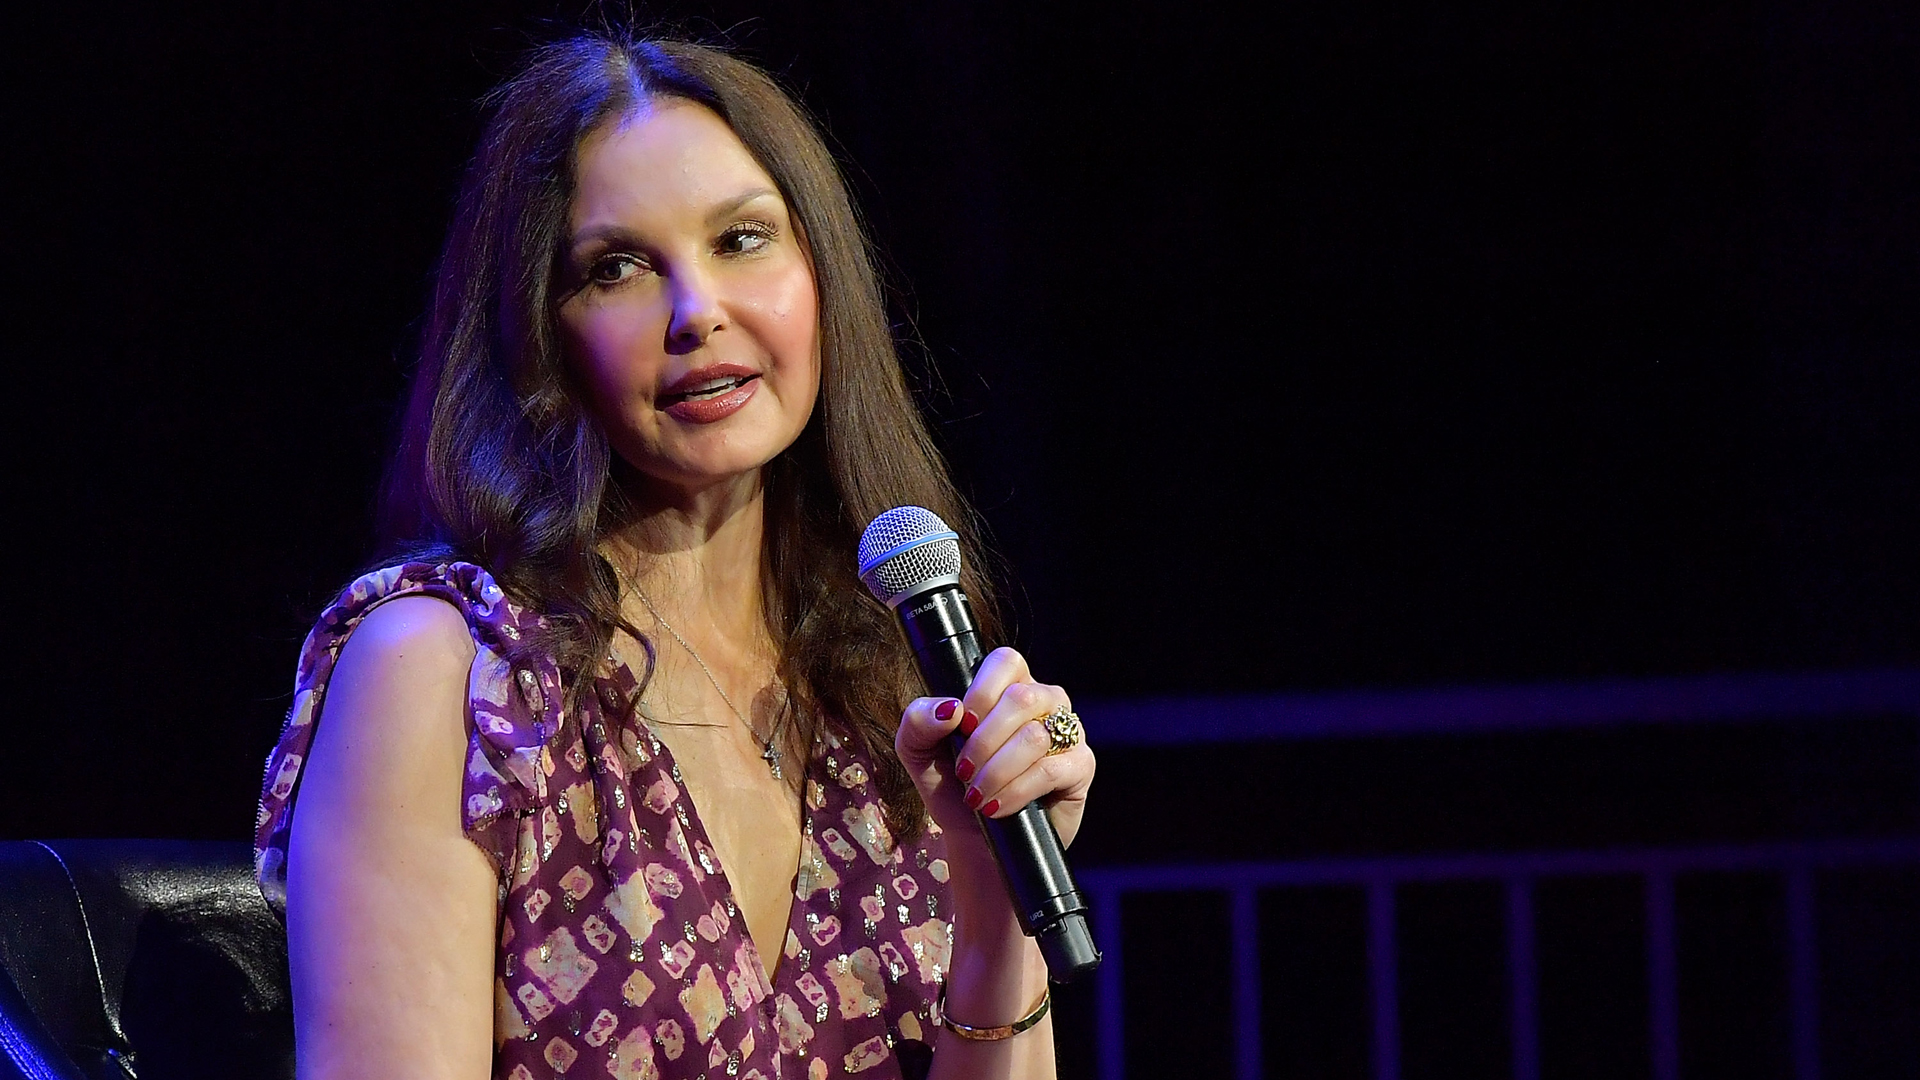 Ashley Judd speaks during an event at the 2018 Tribeca Film Festival in New York City on April 28, 2018. (Credit: Roy Rochlin/Getty Images for Tribeca Film Festival)